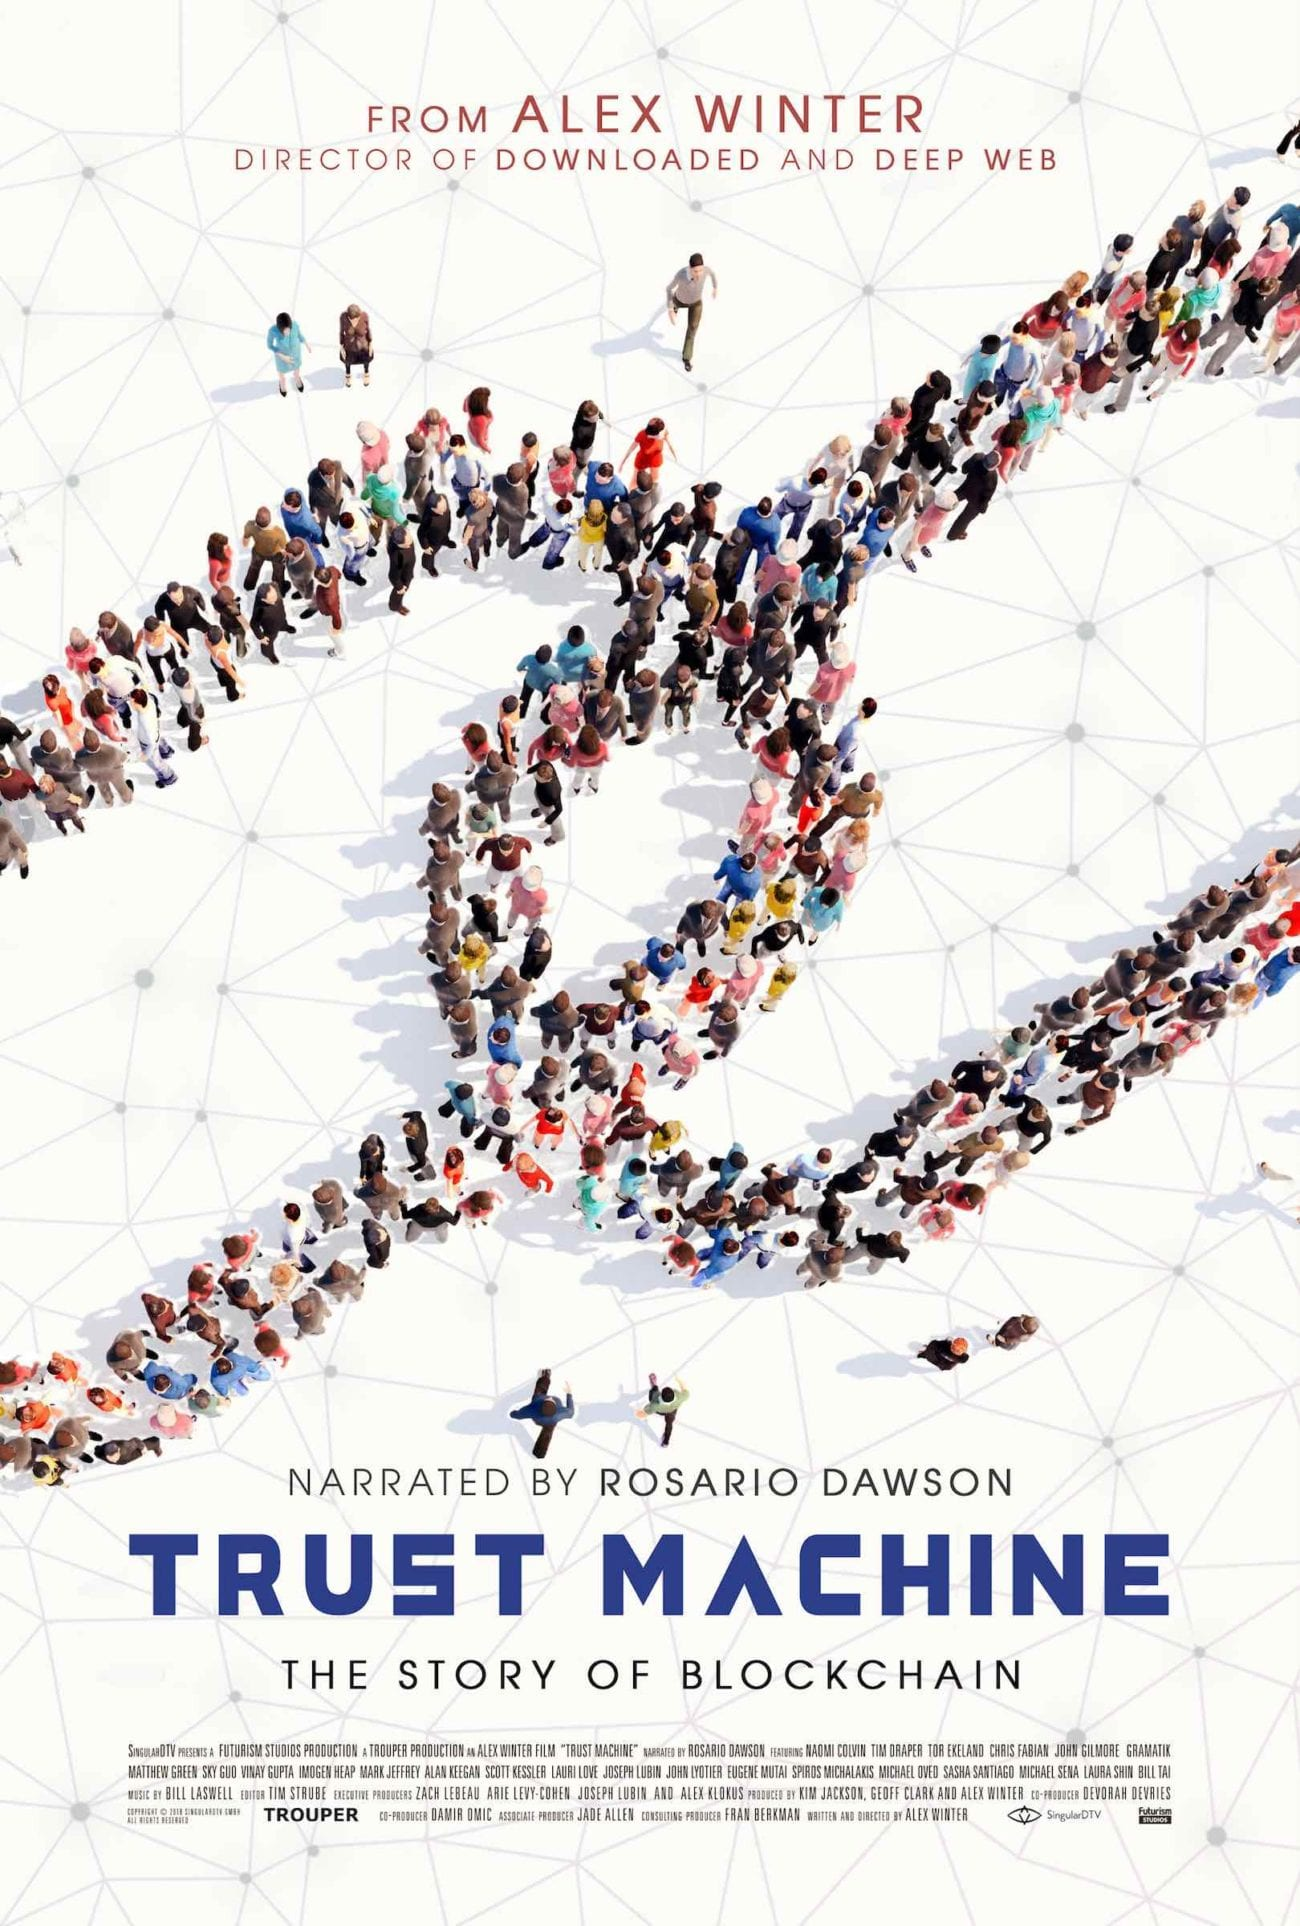 We were incredibly lucky to sit down with documentarian Alex Winter about his film 'Trust Machine' screening at Melbourne Documentary Film Festival.